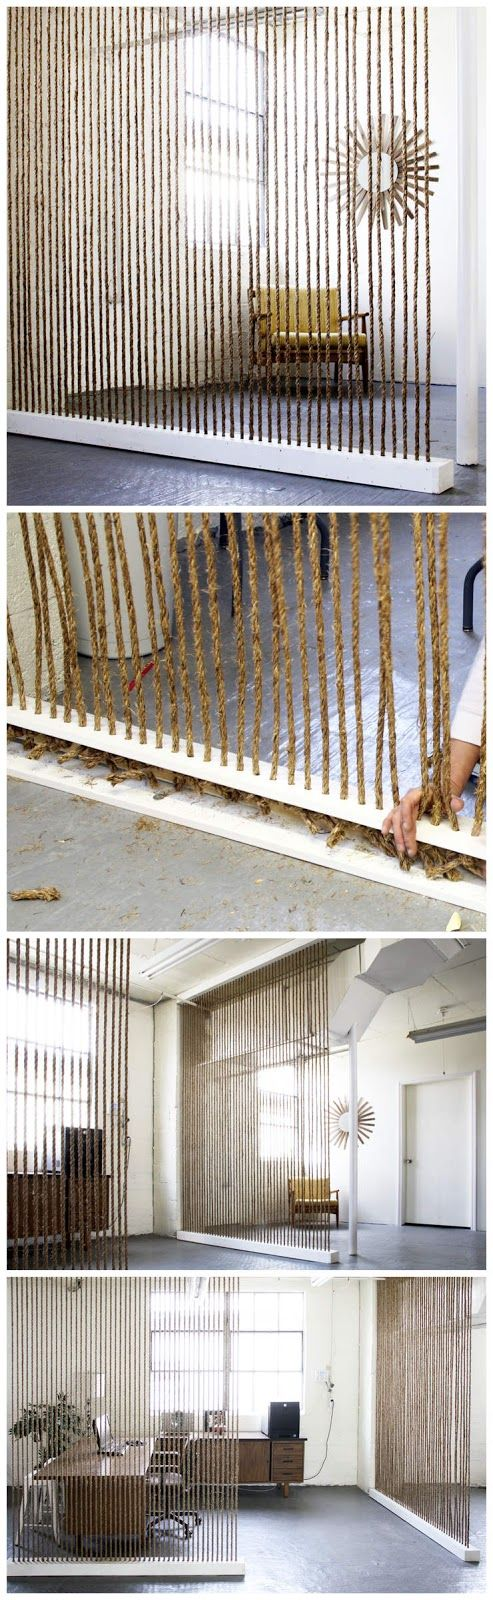 DIY Rope Wall.